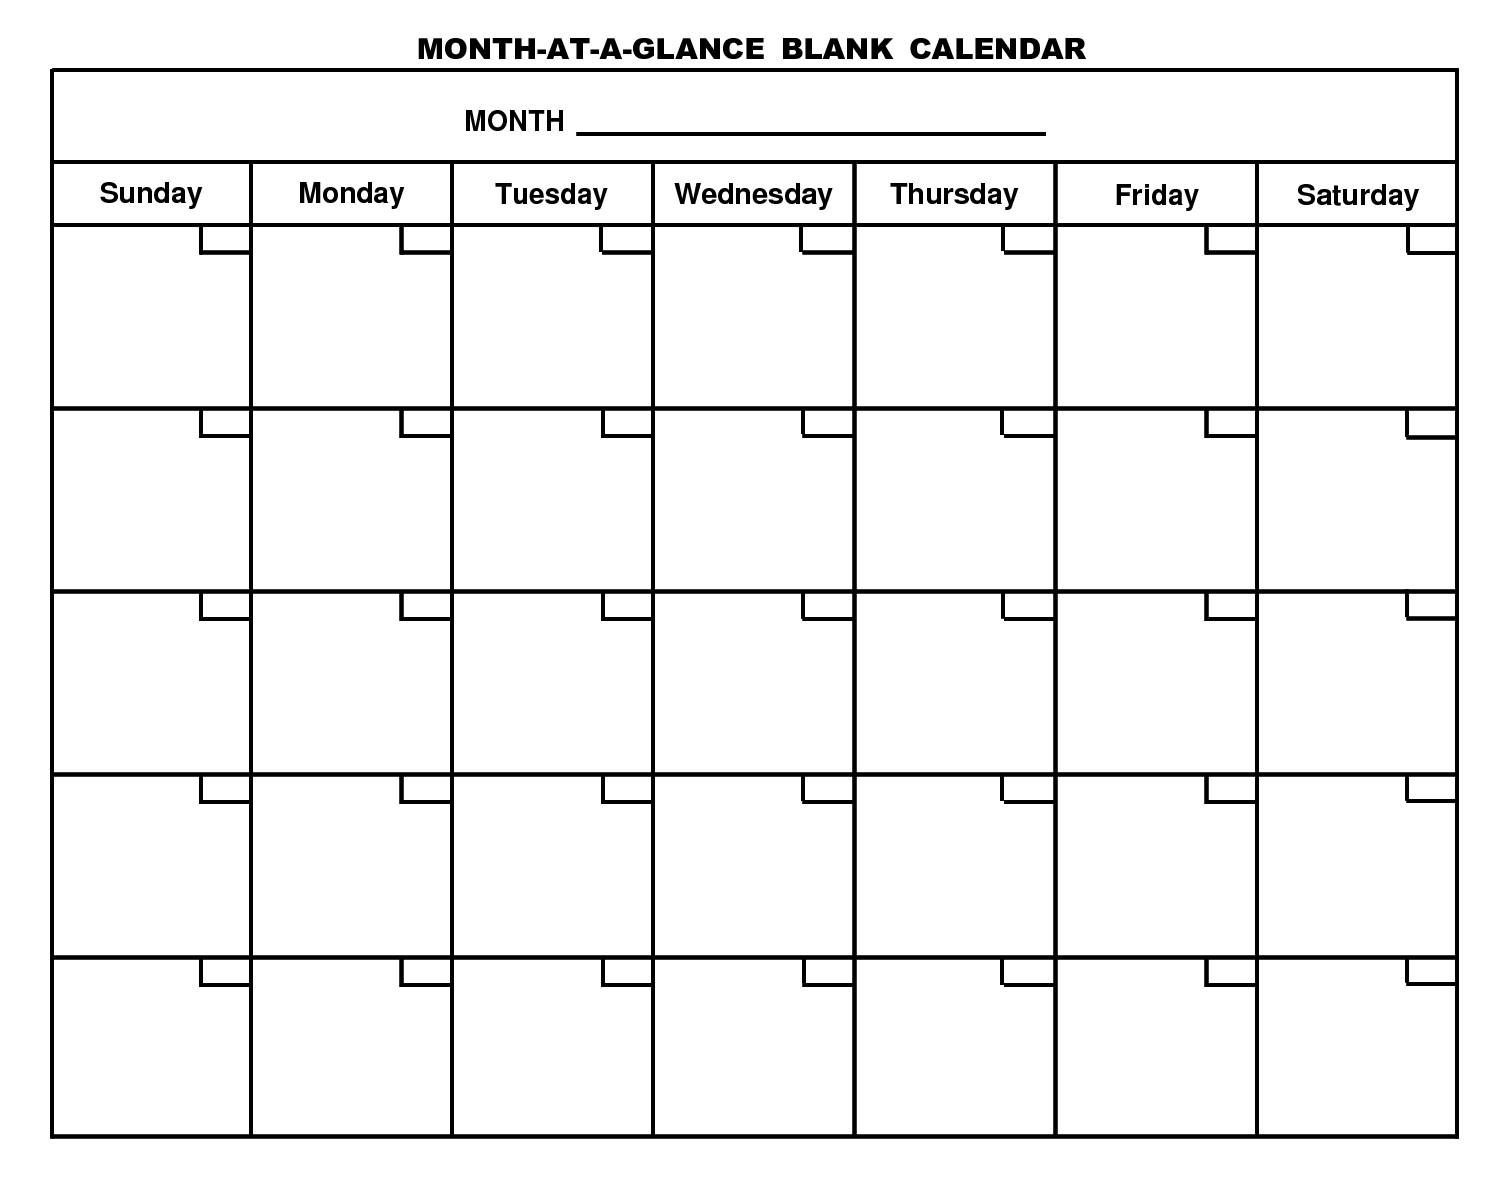 Month At A Glance Blank Calendar | Monthly Printable Calender-Month At A Glance Blank Calendar